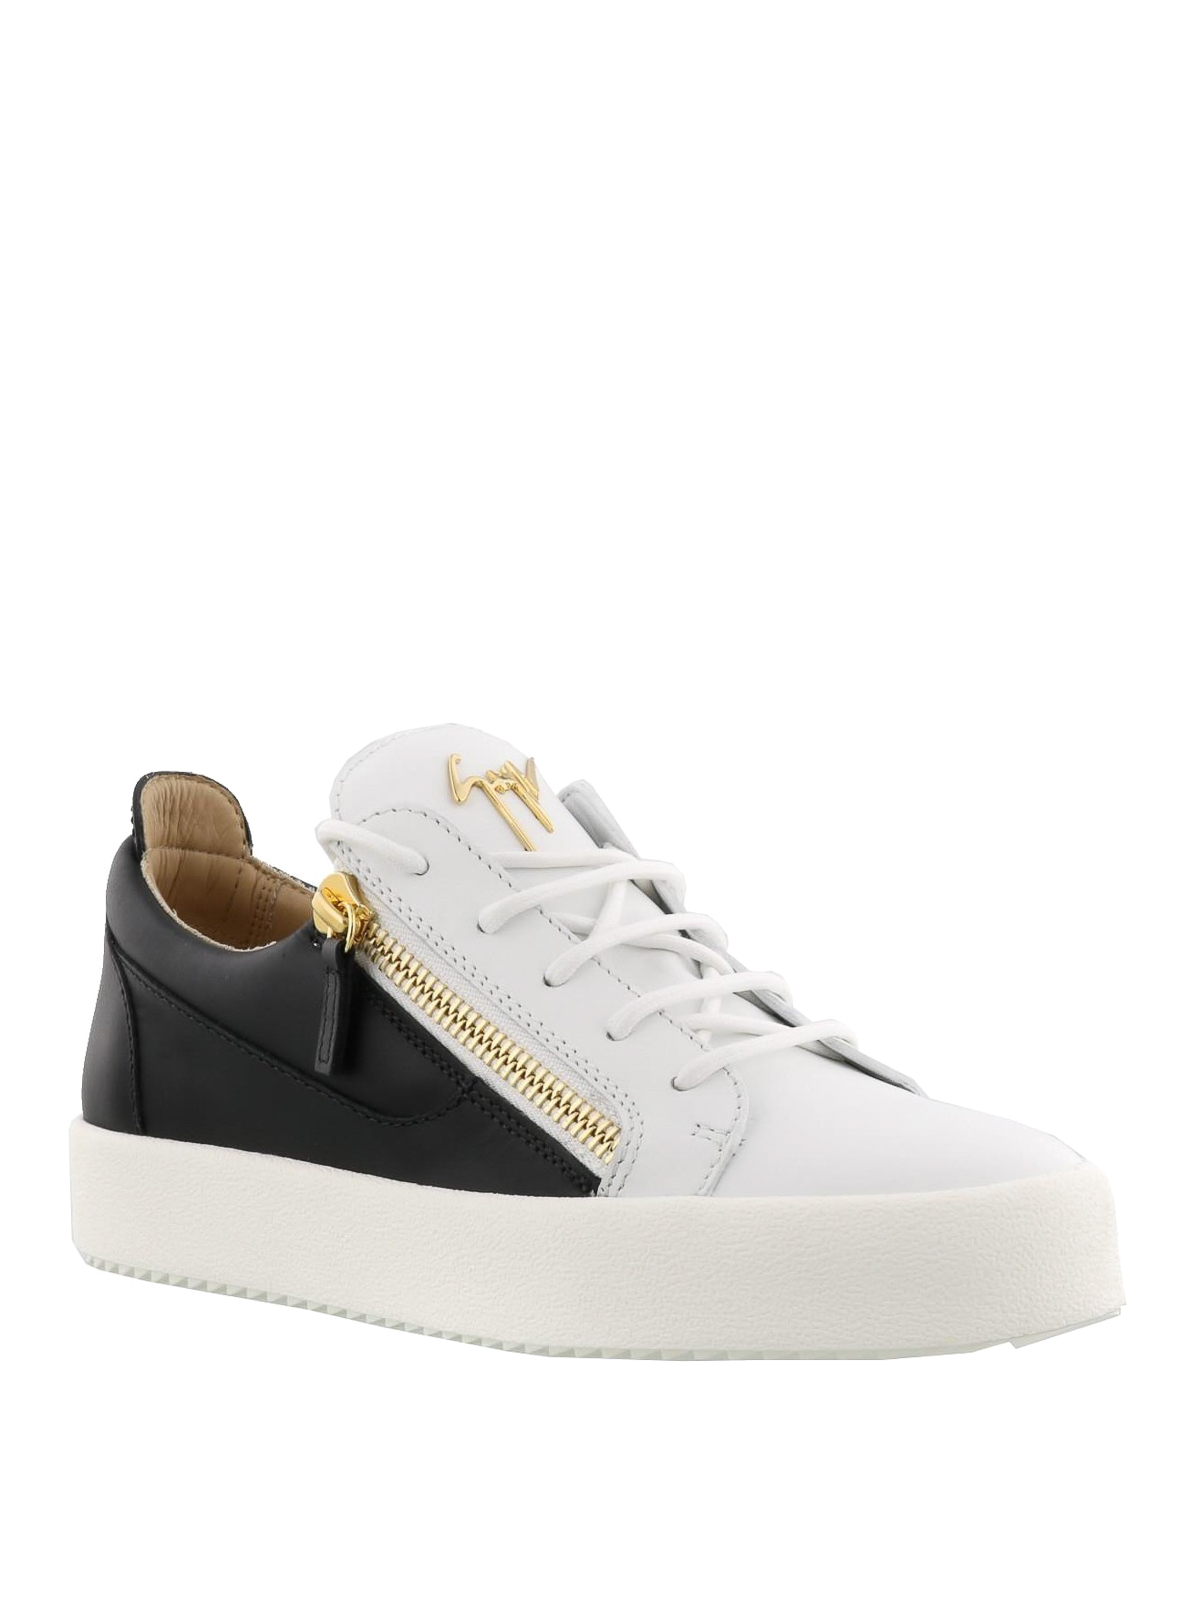 f1dc8ead9 GIUSEPPE ZANOTTI: trainers online - Frankie black and white leather sneakers